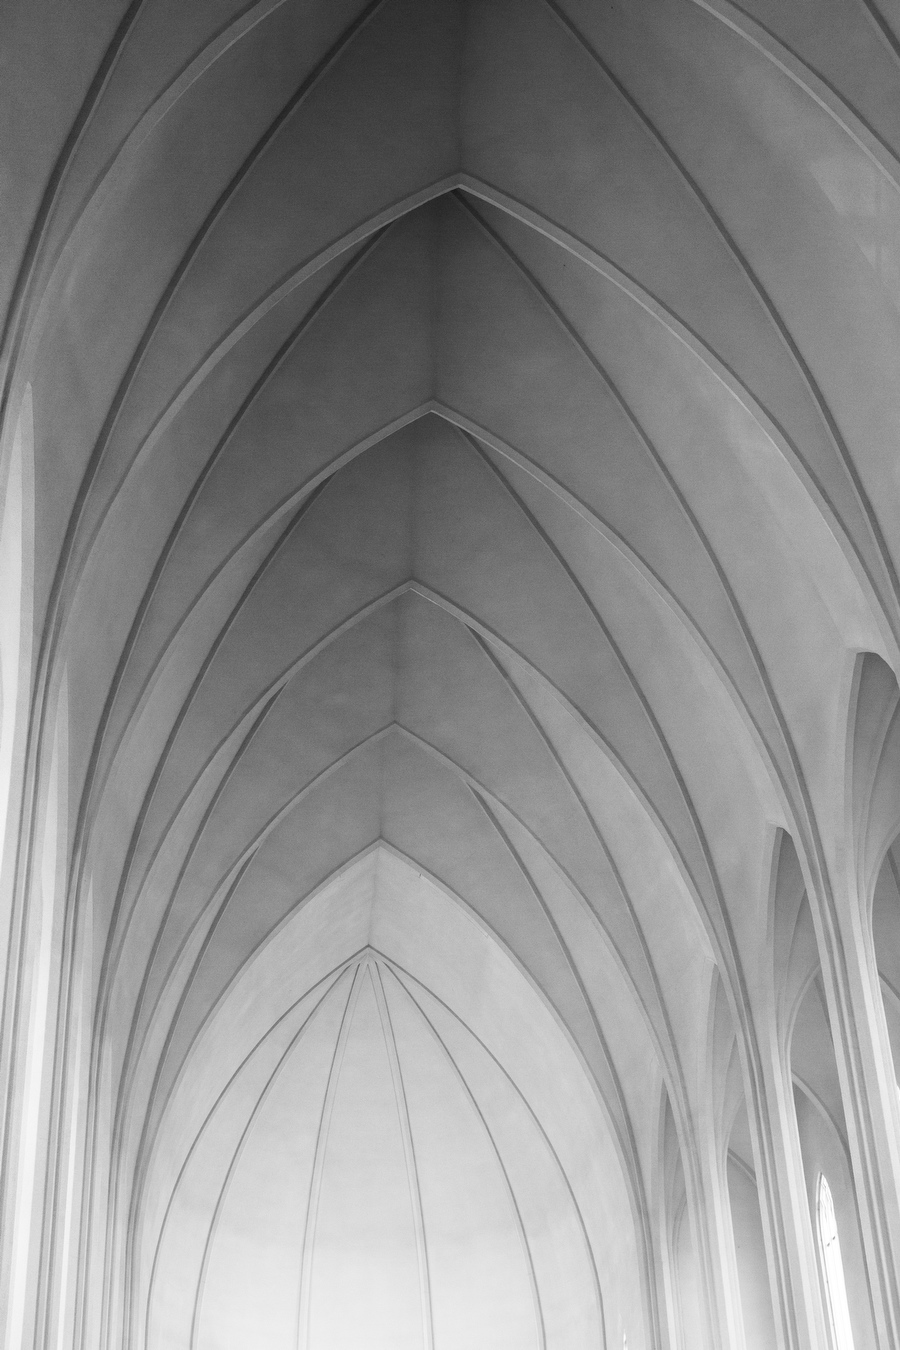 Hallgrímskirkja is a Lutheran parish church in Reykjavík, Iceland. At 73 metres, it is the largest church in Iceland and among the tallest structures in Iceland.